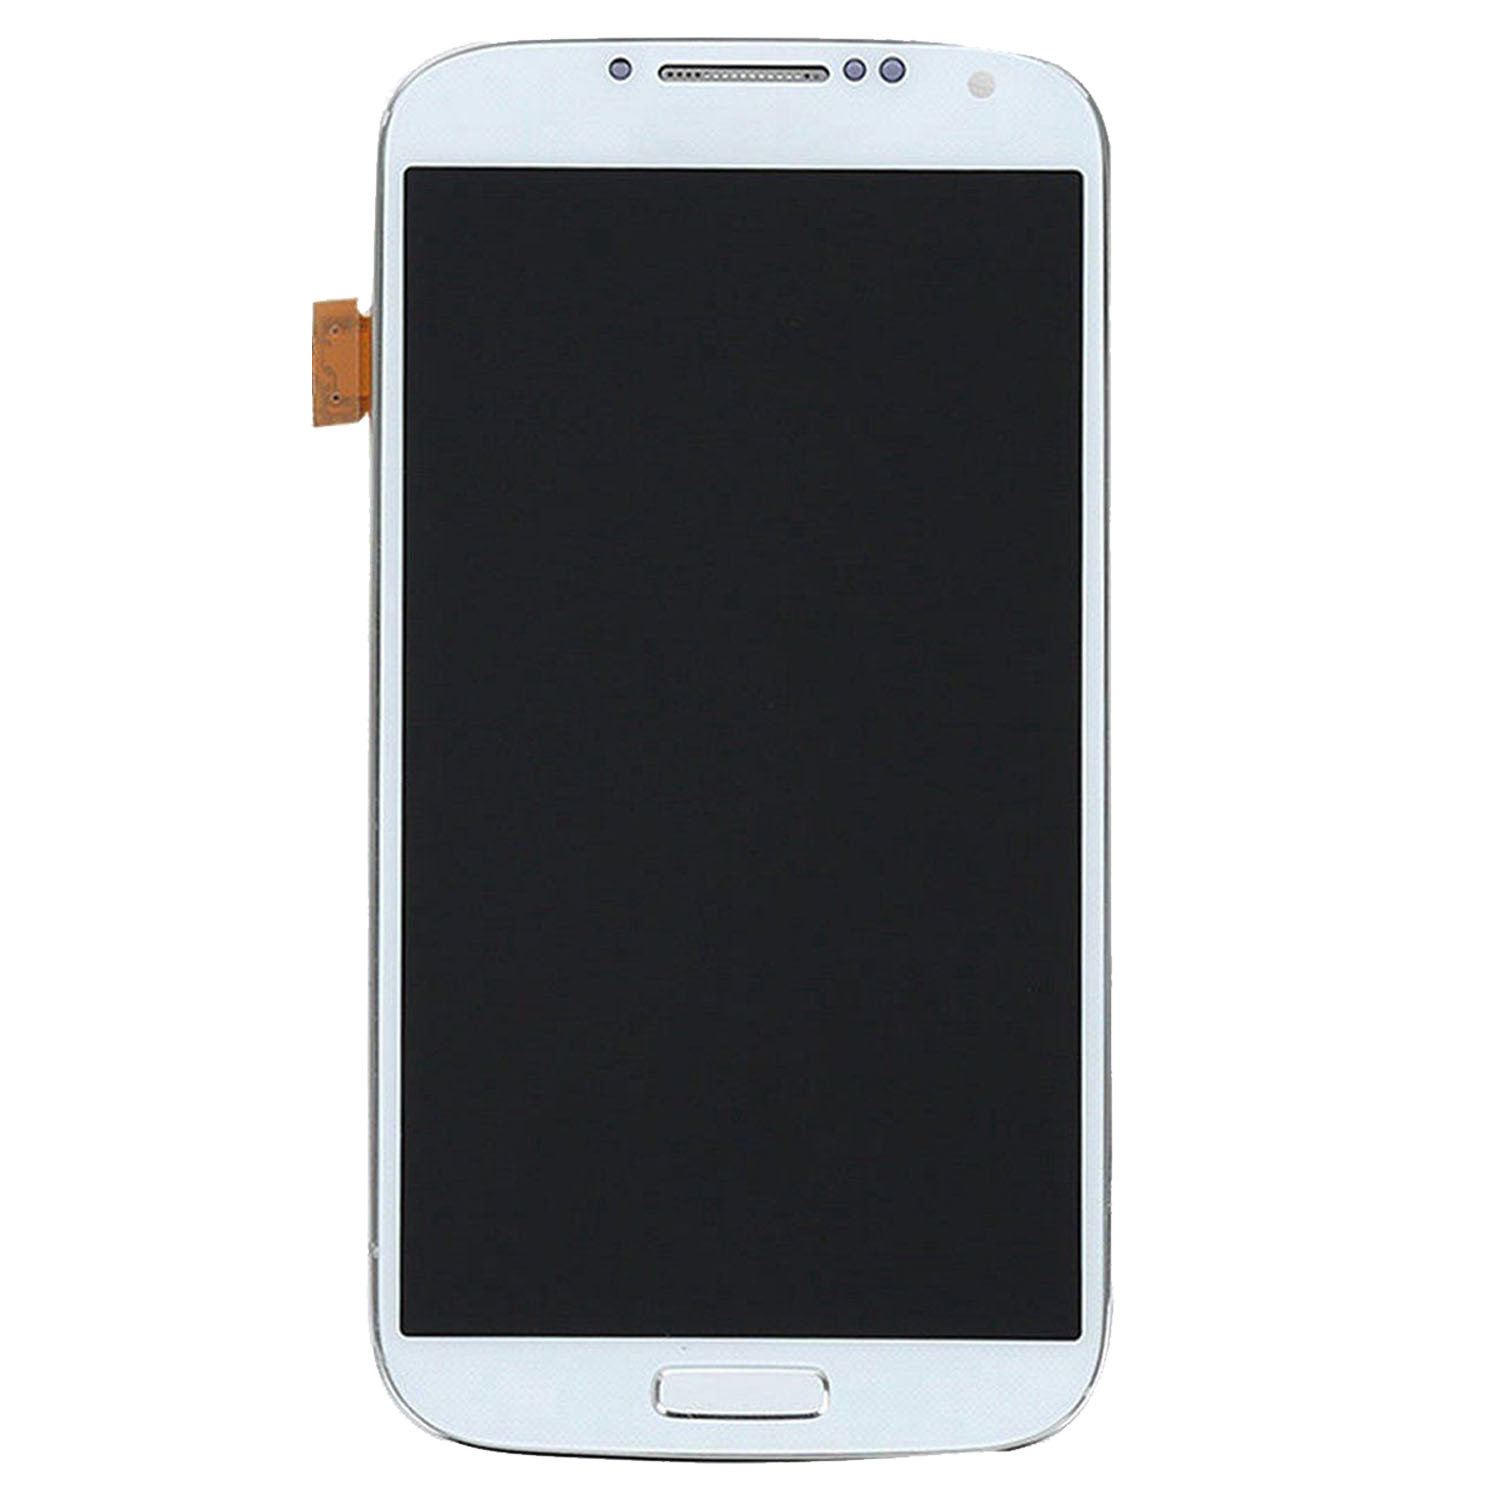 Samsung Galaxy S4 Screen Replacement - White